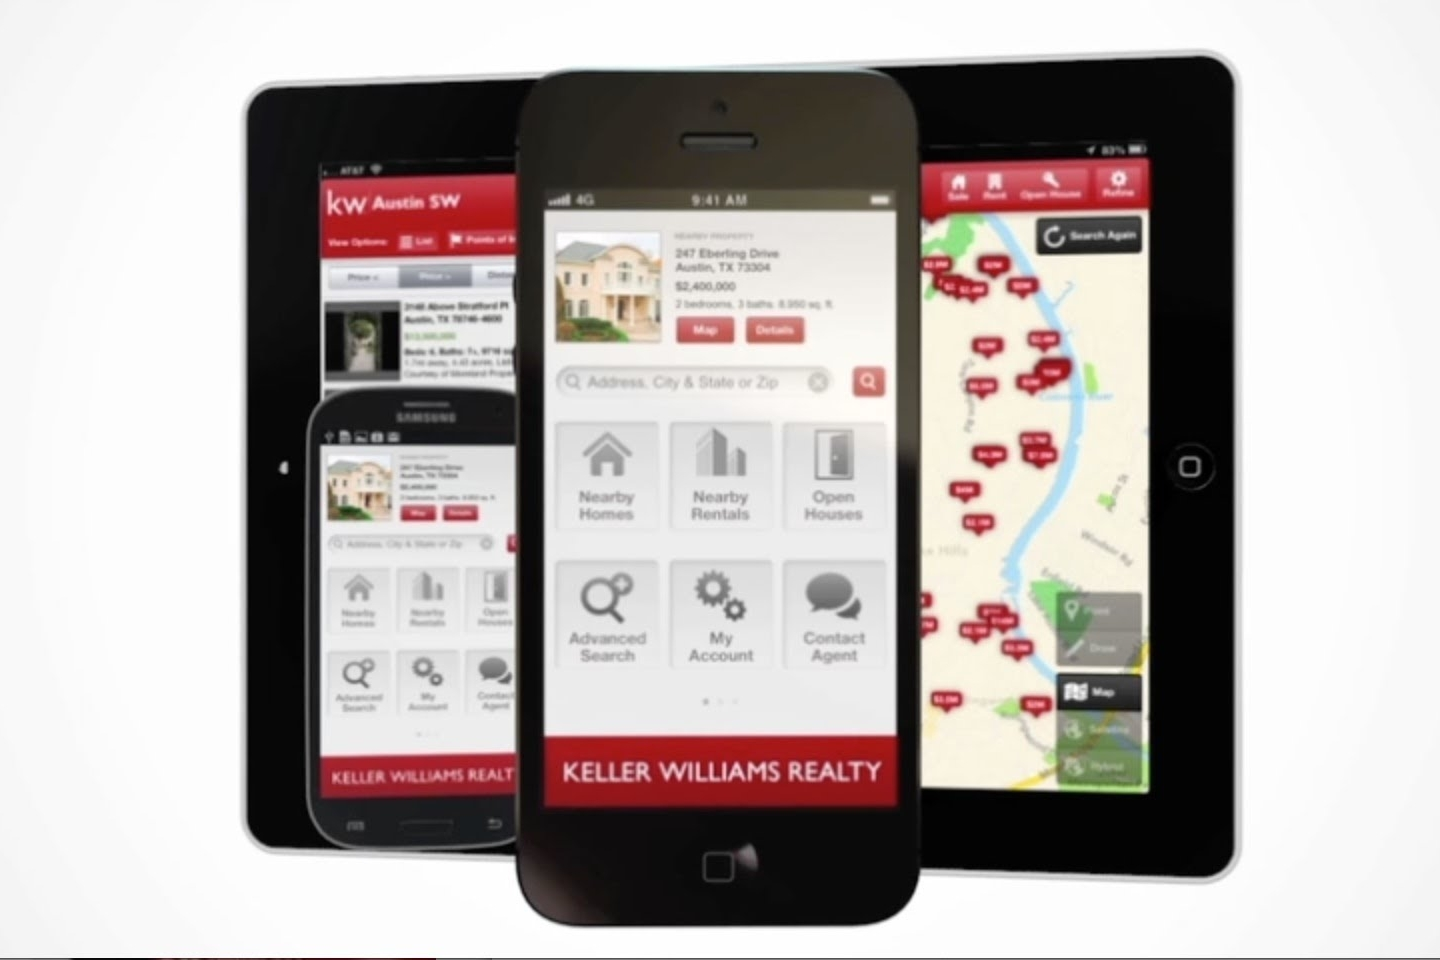 Mobile Property Search App - You and your clients deserve an app that is easy to use, accurate, and allows you to connect with you at the touch of a button. Well, this personally branded app is exactly what you've been looking for.